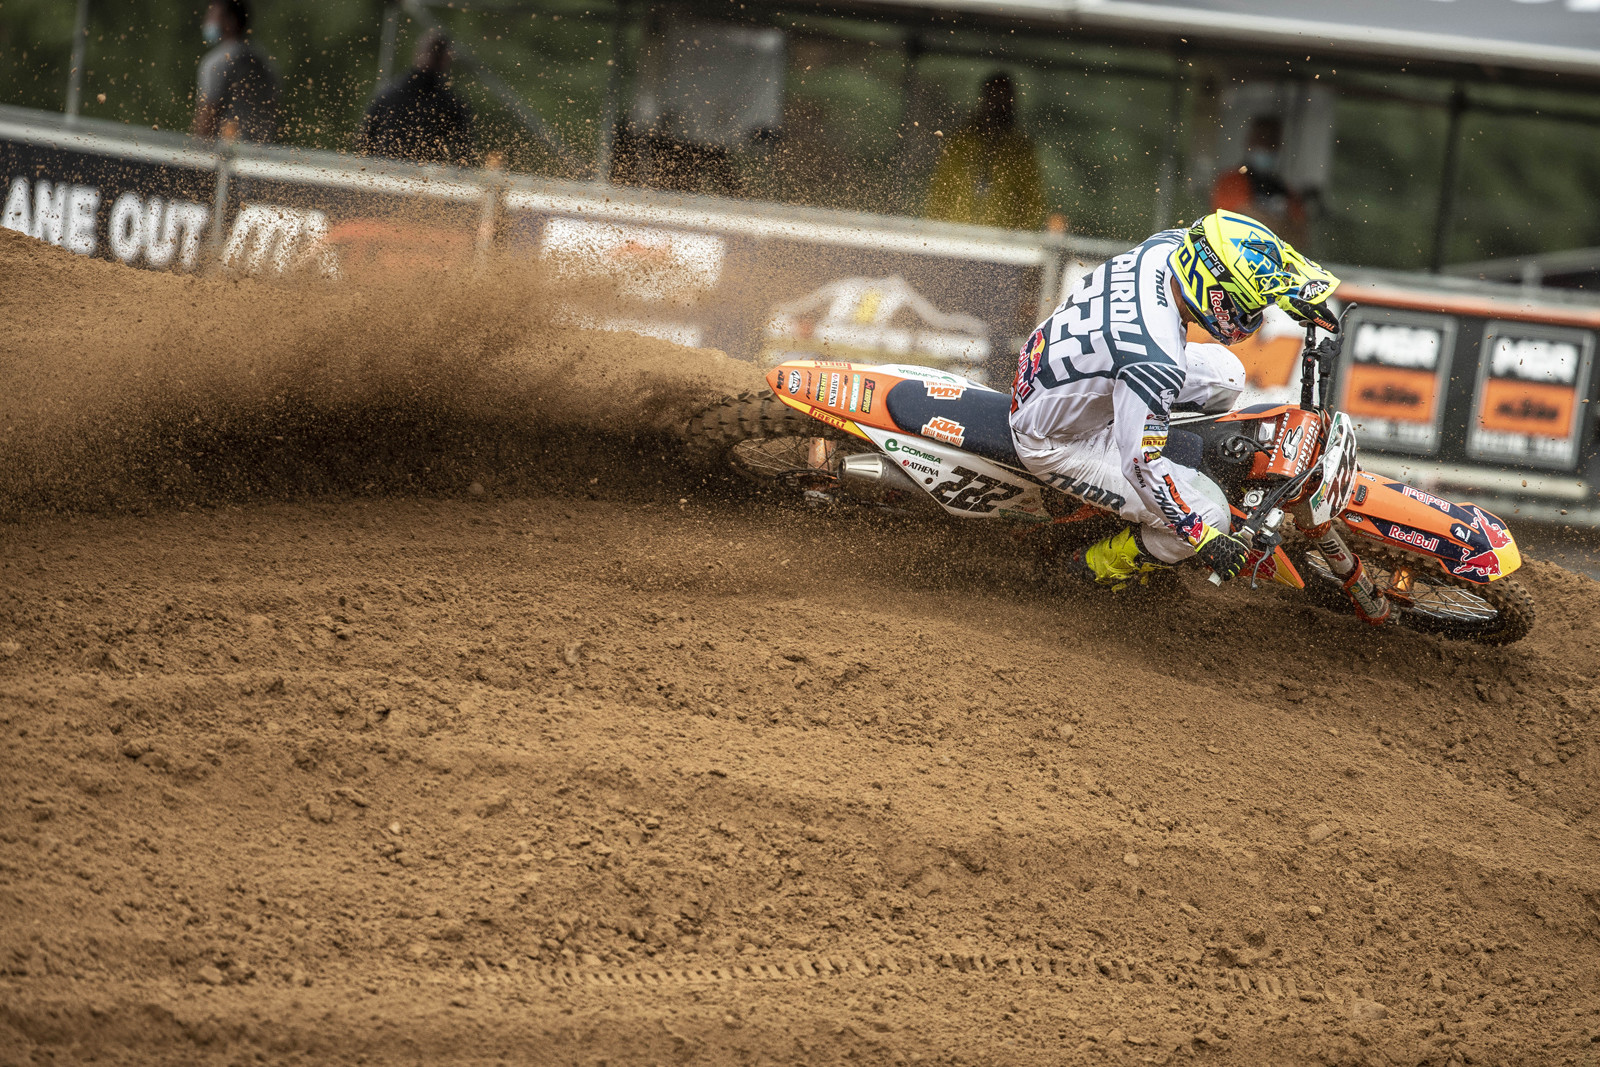 """Tony Cairoli: """"I'm really happy to be back on the podium and with a win. Last Sunday wasn't my day and I was dealing with another injury to my knee. I didn't know what to expect. I went to the hospital to get some fluid and anti-inflammatory treatment. It was pretty sore and swollen. In the first moto I stayed out of trouble, made my rhythm, kept smooth and tried to keep my feet up. I was really happy with how it went. In the second moto I made another good start but Jeffrey and [Arminas] Jasikonis were riding really fast. I just tried to follow, and I knew my condition was OK: if I could be with them then I could push even more at the end. At one point in the waves I saw the yellow flags and Jeffrey on the floor. He picked up and started very fast in front of me and I was a bit shocked and had to brake. I lost the front wheel. I had a gap over the others so held my position and watched what would happen. I'm really happy with the result and the improvement over last weekend – especially with the starts – so now I'm looking forward to the next Sunday. Hopefully the knee can be a bit stronger and ready for the battles we all want to see."""""""